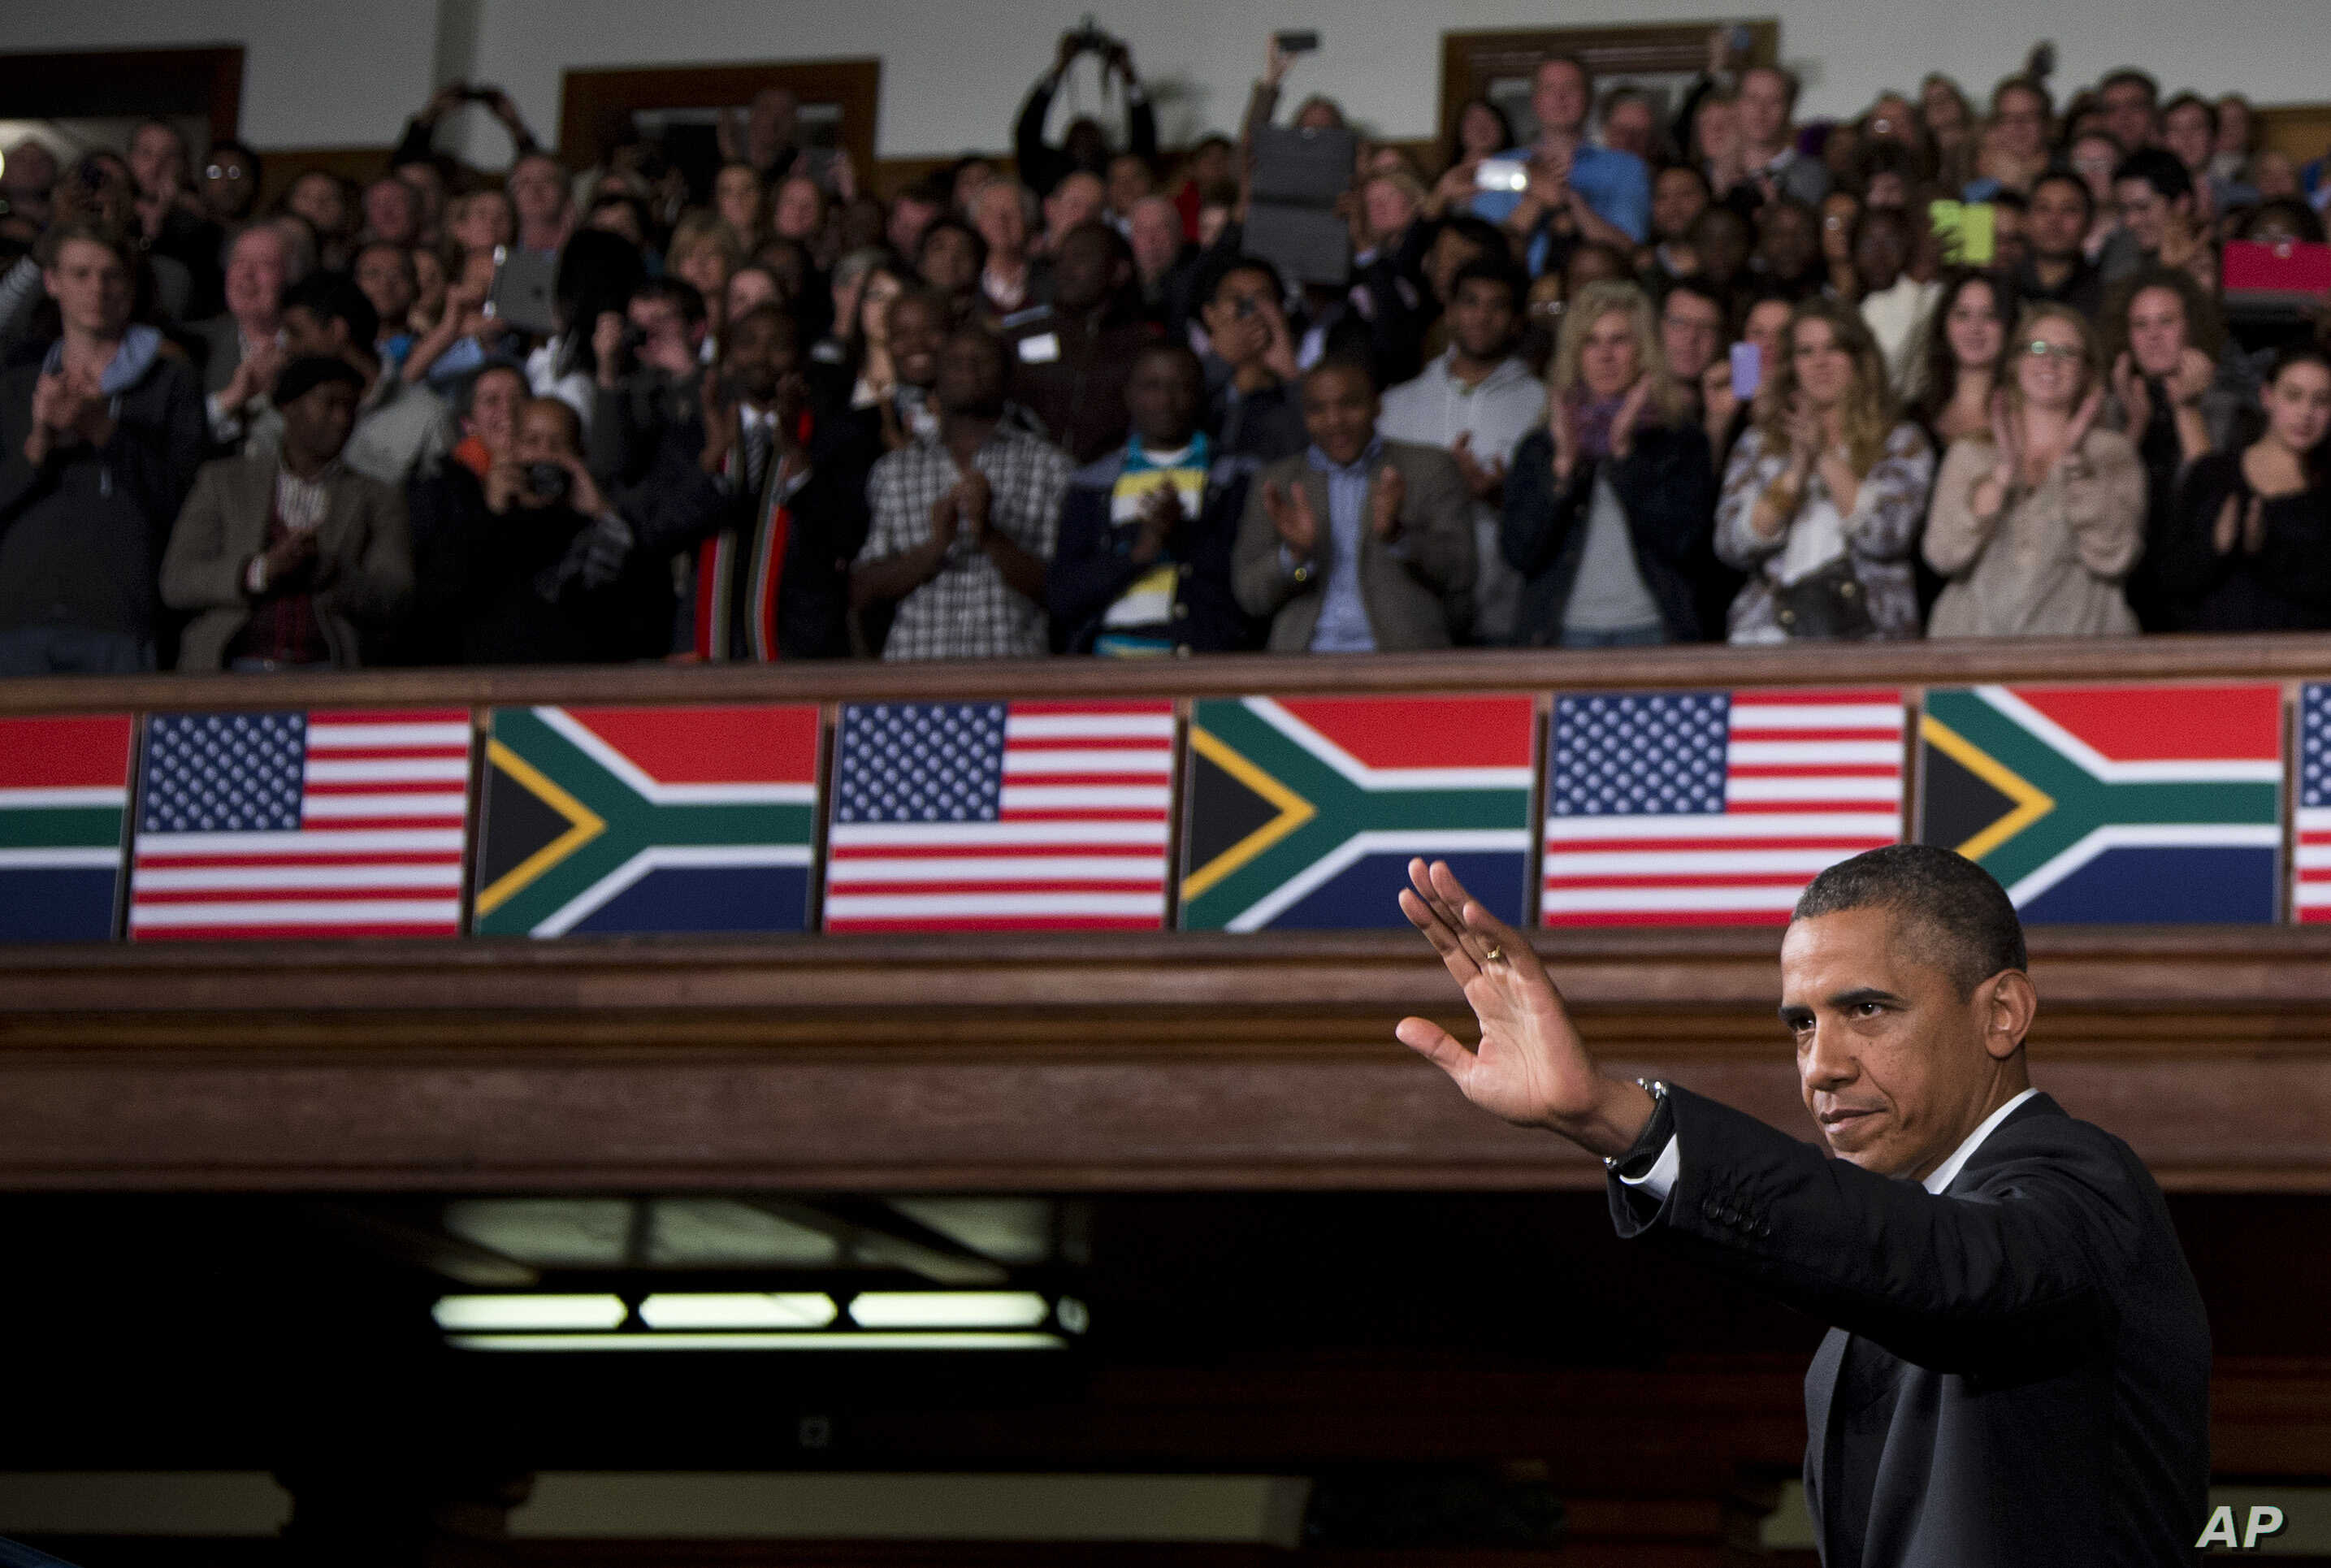 U.S. President Barack Obama speaks at the University of Cape Town Sunday, Jun. 30, 2013, in Cape Town, South Africa.